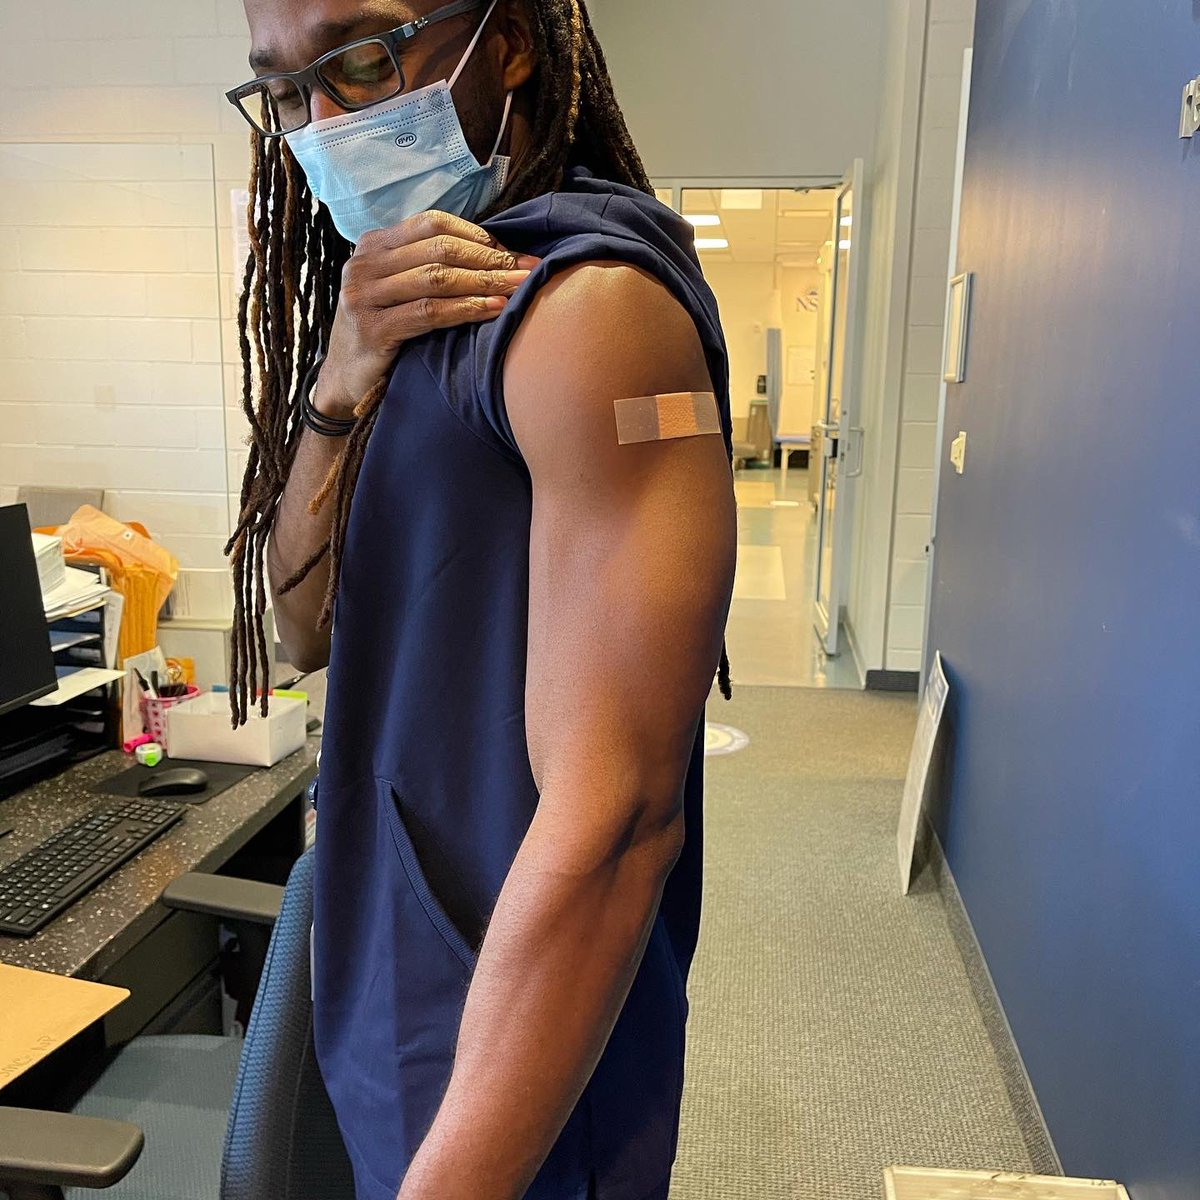 2nd dose ✅  From this point, 1-2 weeks needed to be considered fully vaccinated.  Stay distant and keep yourself 😷   #covidvacccine #phizer #ourshot #blackexcellence #melanin #blackdoctors #melanindoc #physicaltherapist #sportsmedicine #cdc #vaccination